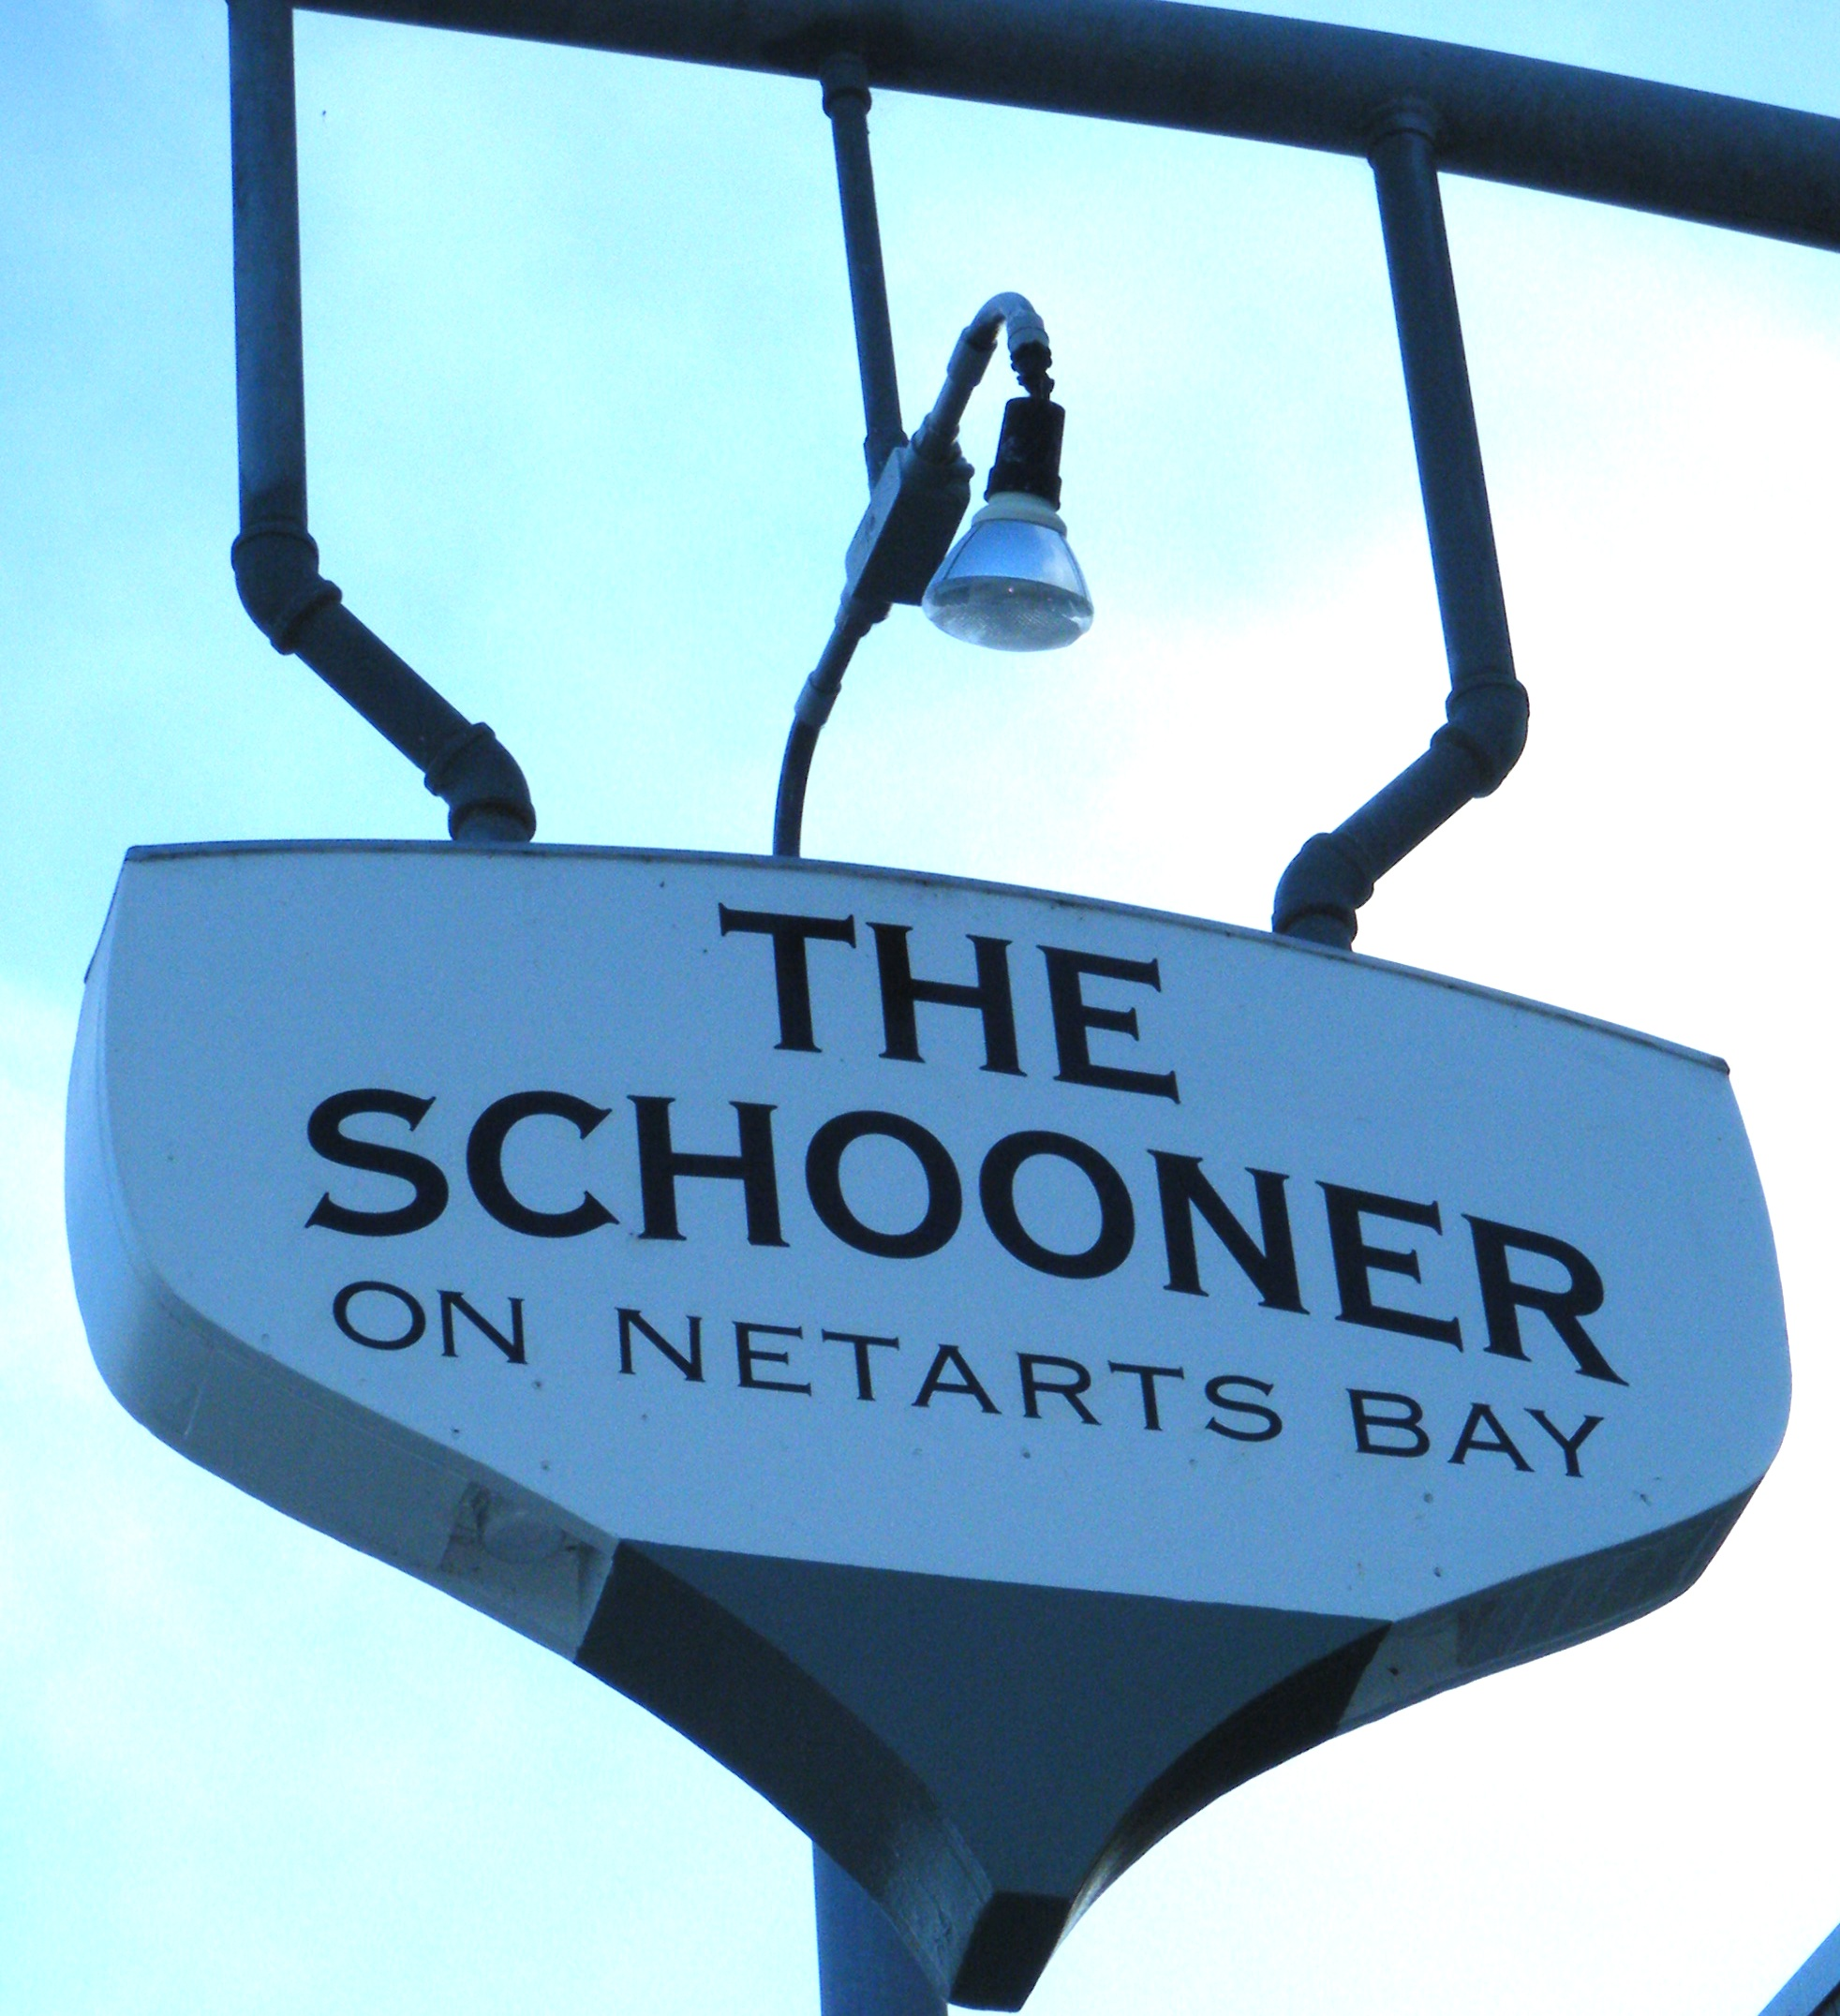 The Schooner on Netarts Bay, Oregon